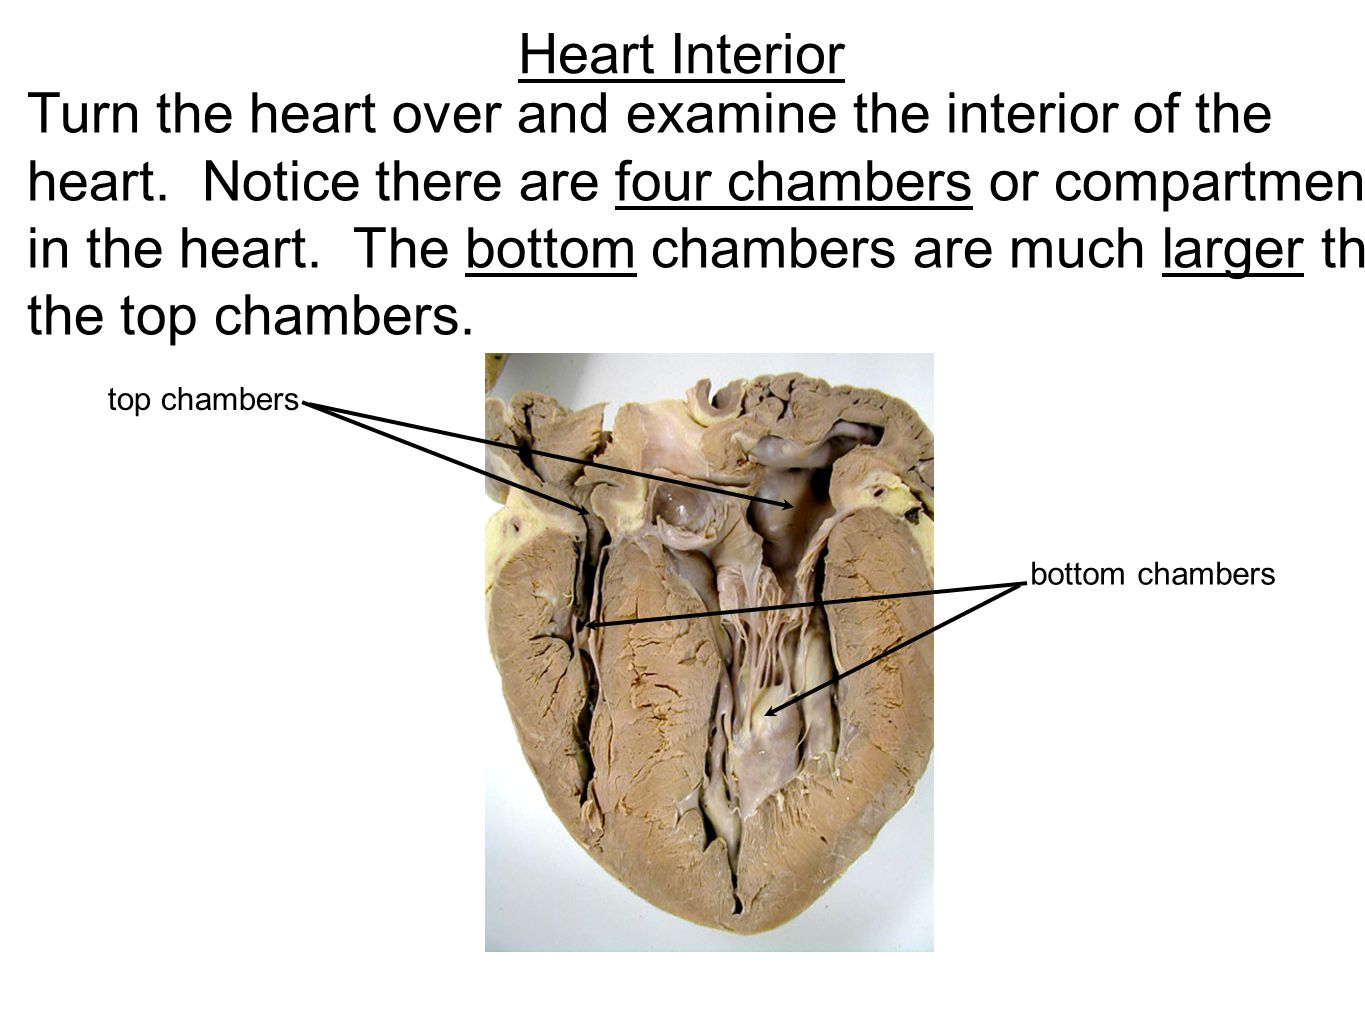 Heart Interior Turn the heart over and examine the interior of the heart. Notice there are four chambers or compartments in the heart. The bottom cham